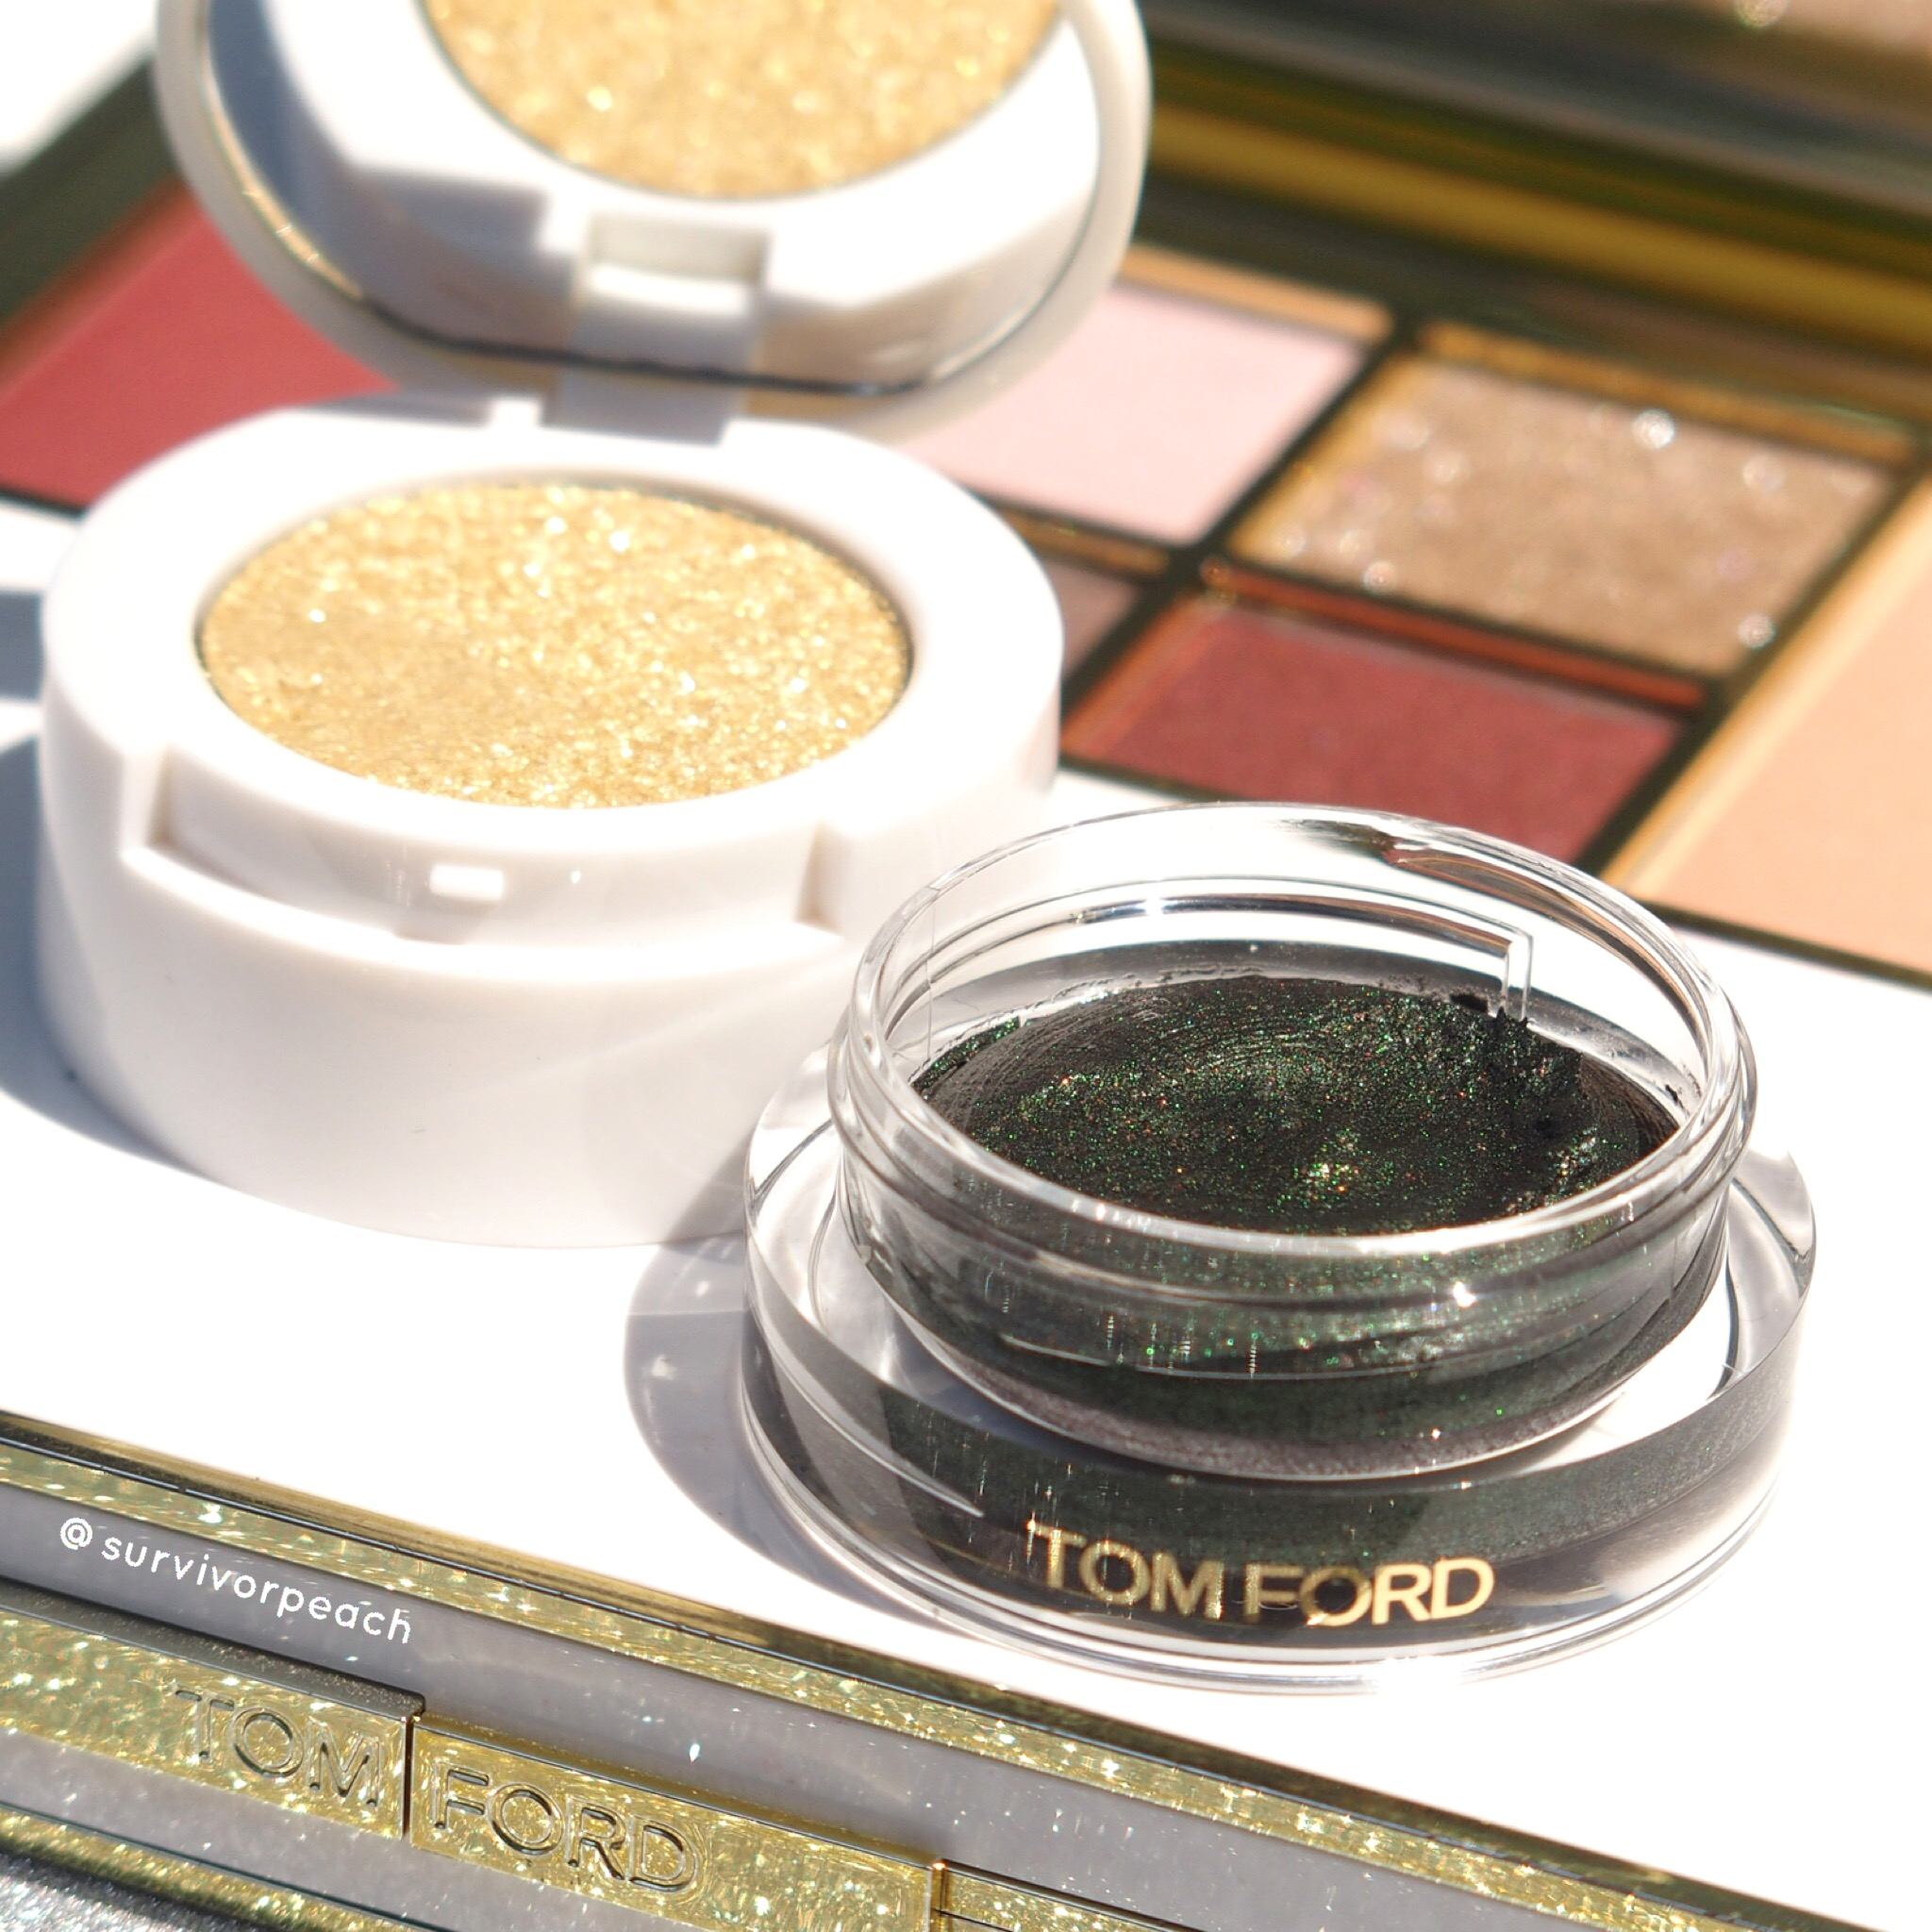 Tomford Cream to Powder eyeshadow duo in shade Emerald Isles